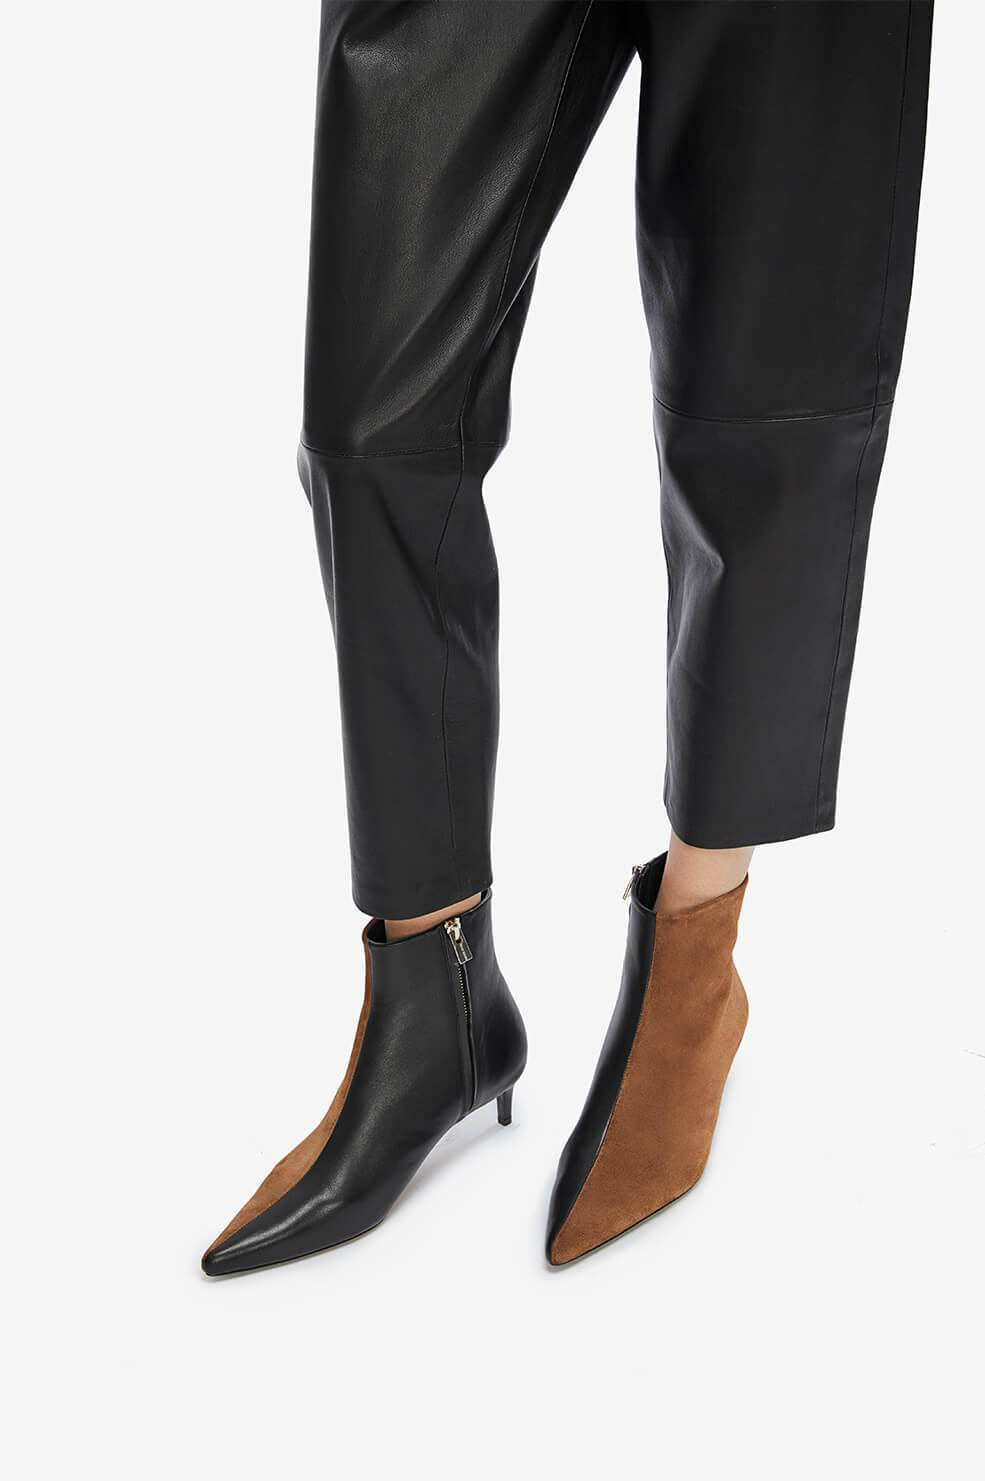 ANINE BING Loren Boots - Cognac And Black